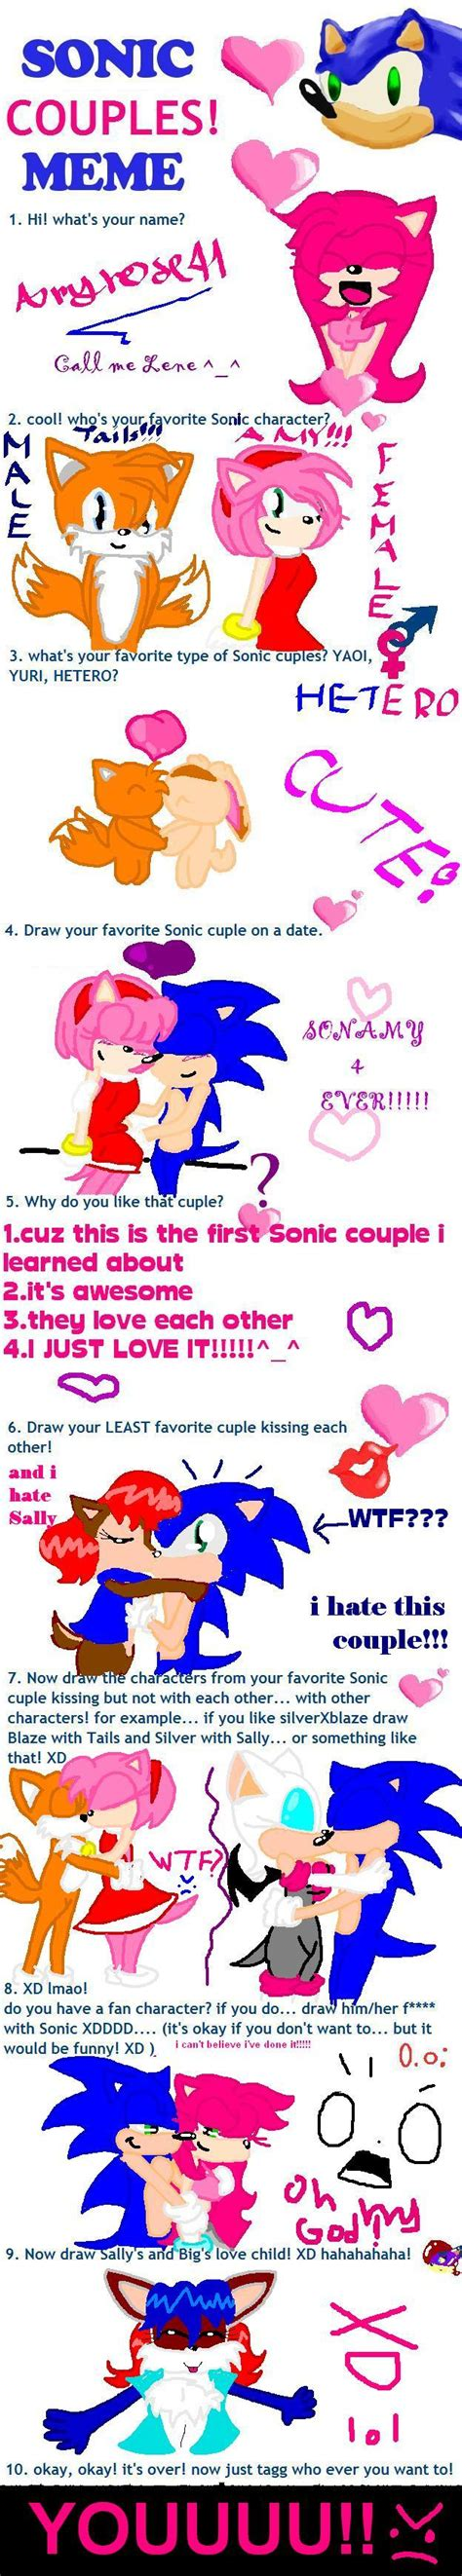 Sonic Couples Meme - art sonic couples meme by amyrose41 on deviantart